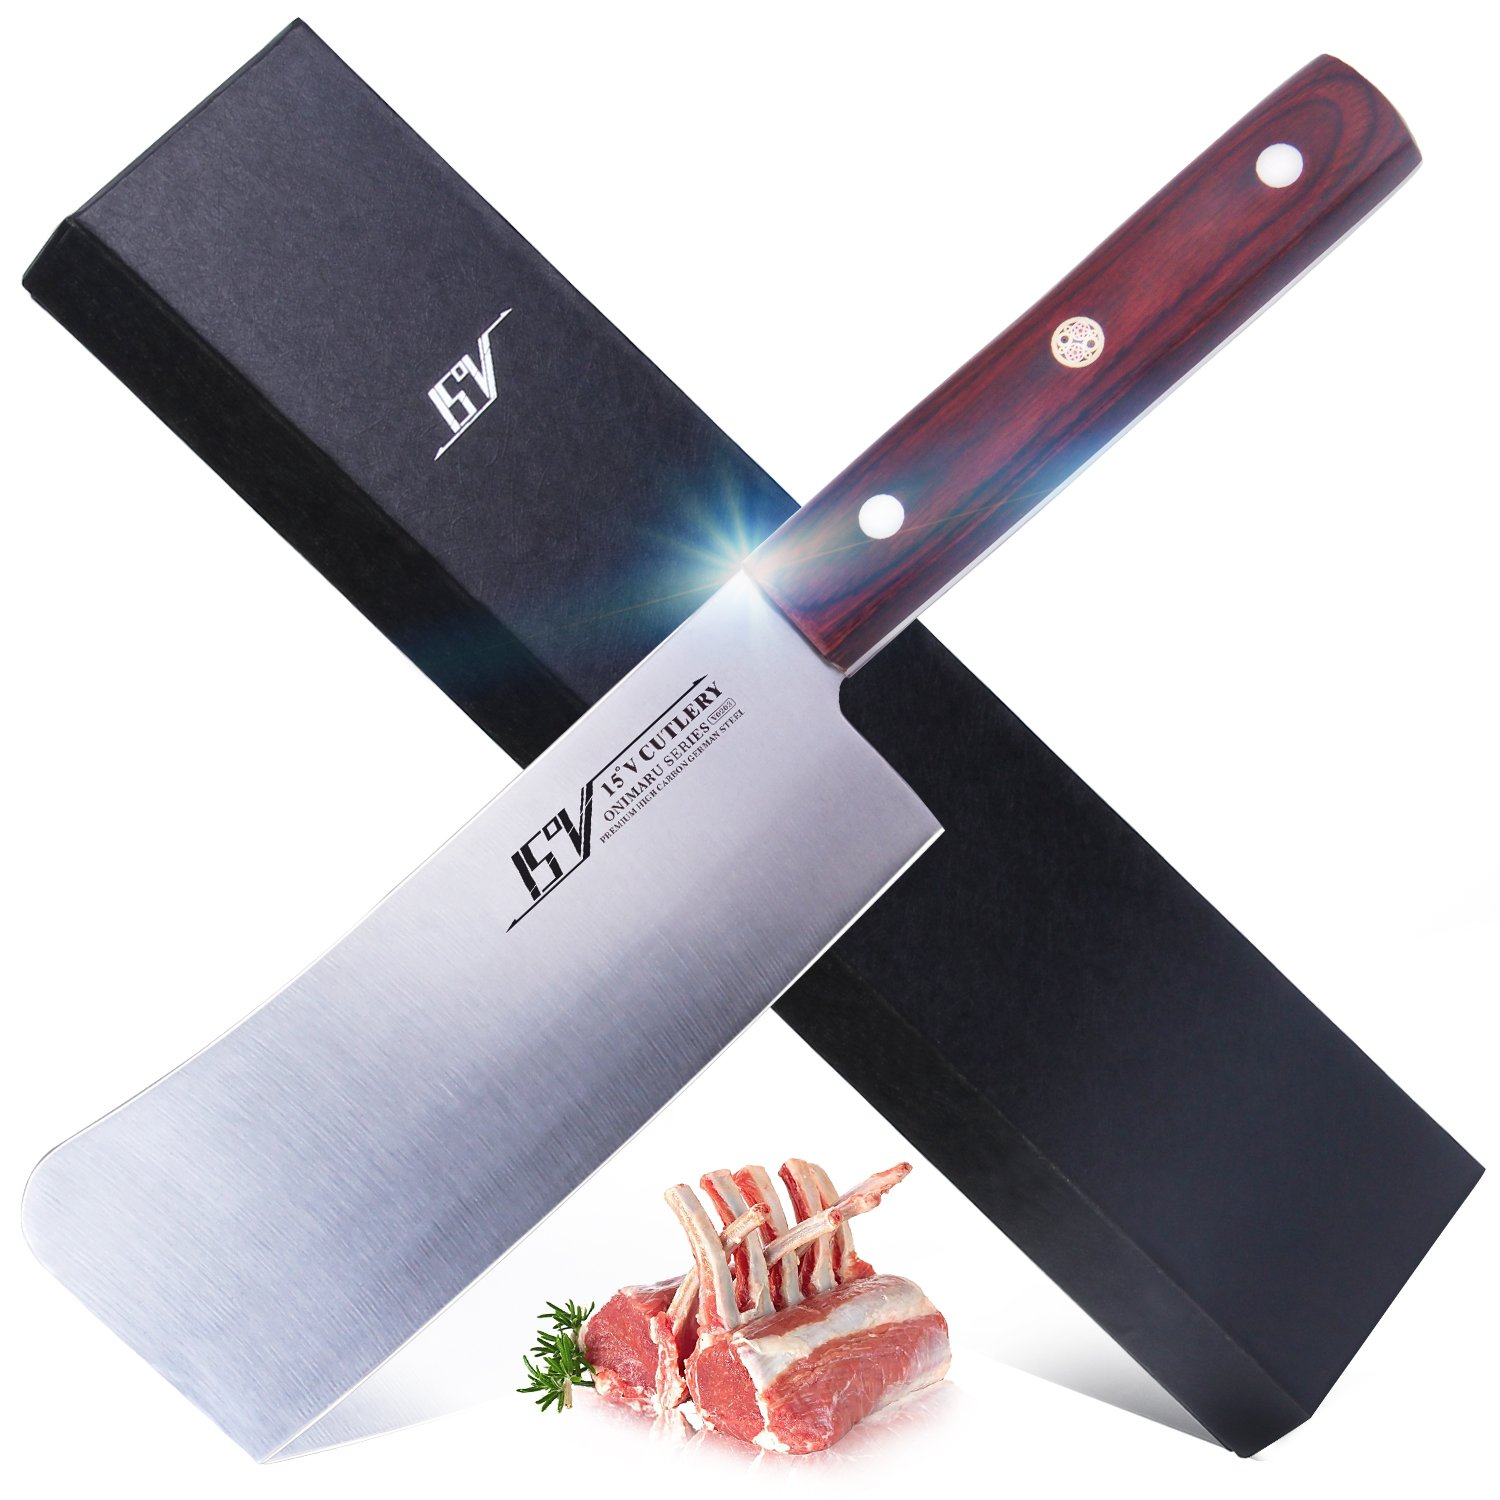 15V chopping Knife for kitchen - High Carbon German Steel meat vegetable cleaver knife Full Tang Pakkawood Handle - ONIMARU Series